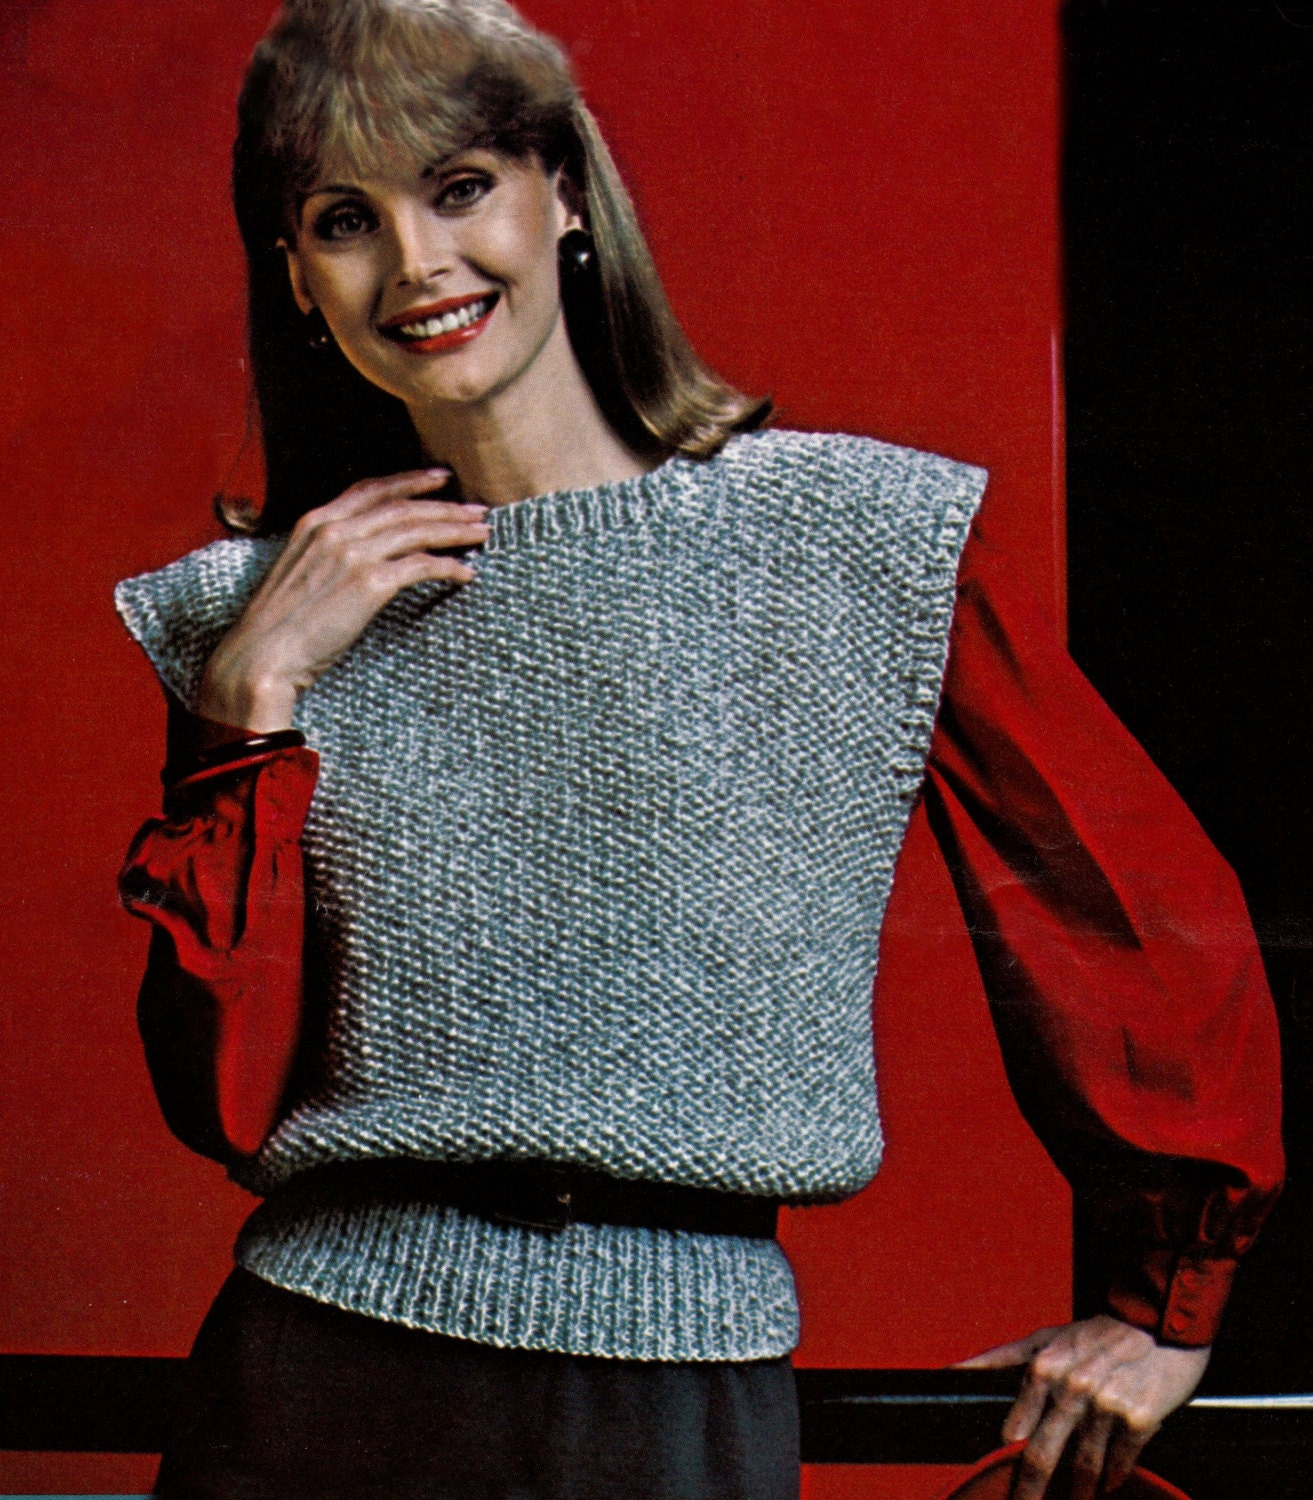 Pullover Vest Knitting Pattern : Knitted vest vintage sweater pattern sleeveless